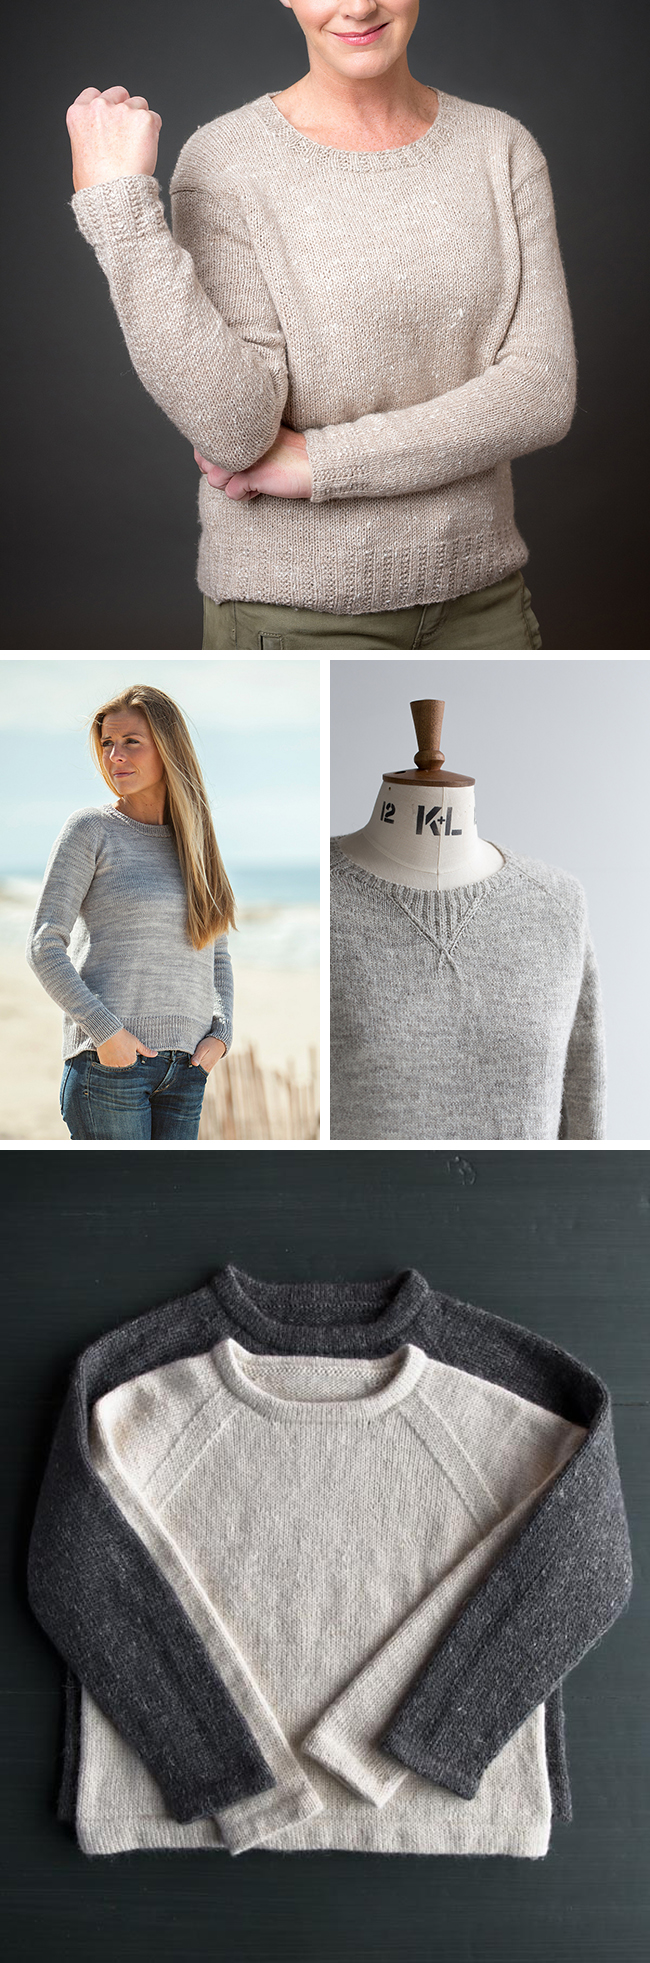 Top: Echo Lake  by Courtney Kelley / middle left:  Tide Chart  by Amy Miller /middle right:  Polwarth  by Ysolda Teague / bottom:  Classic Hemmed Crewneck  by Purl Soho  Image courtesy of Fringe Association.